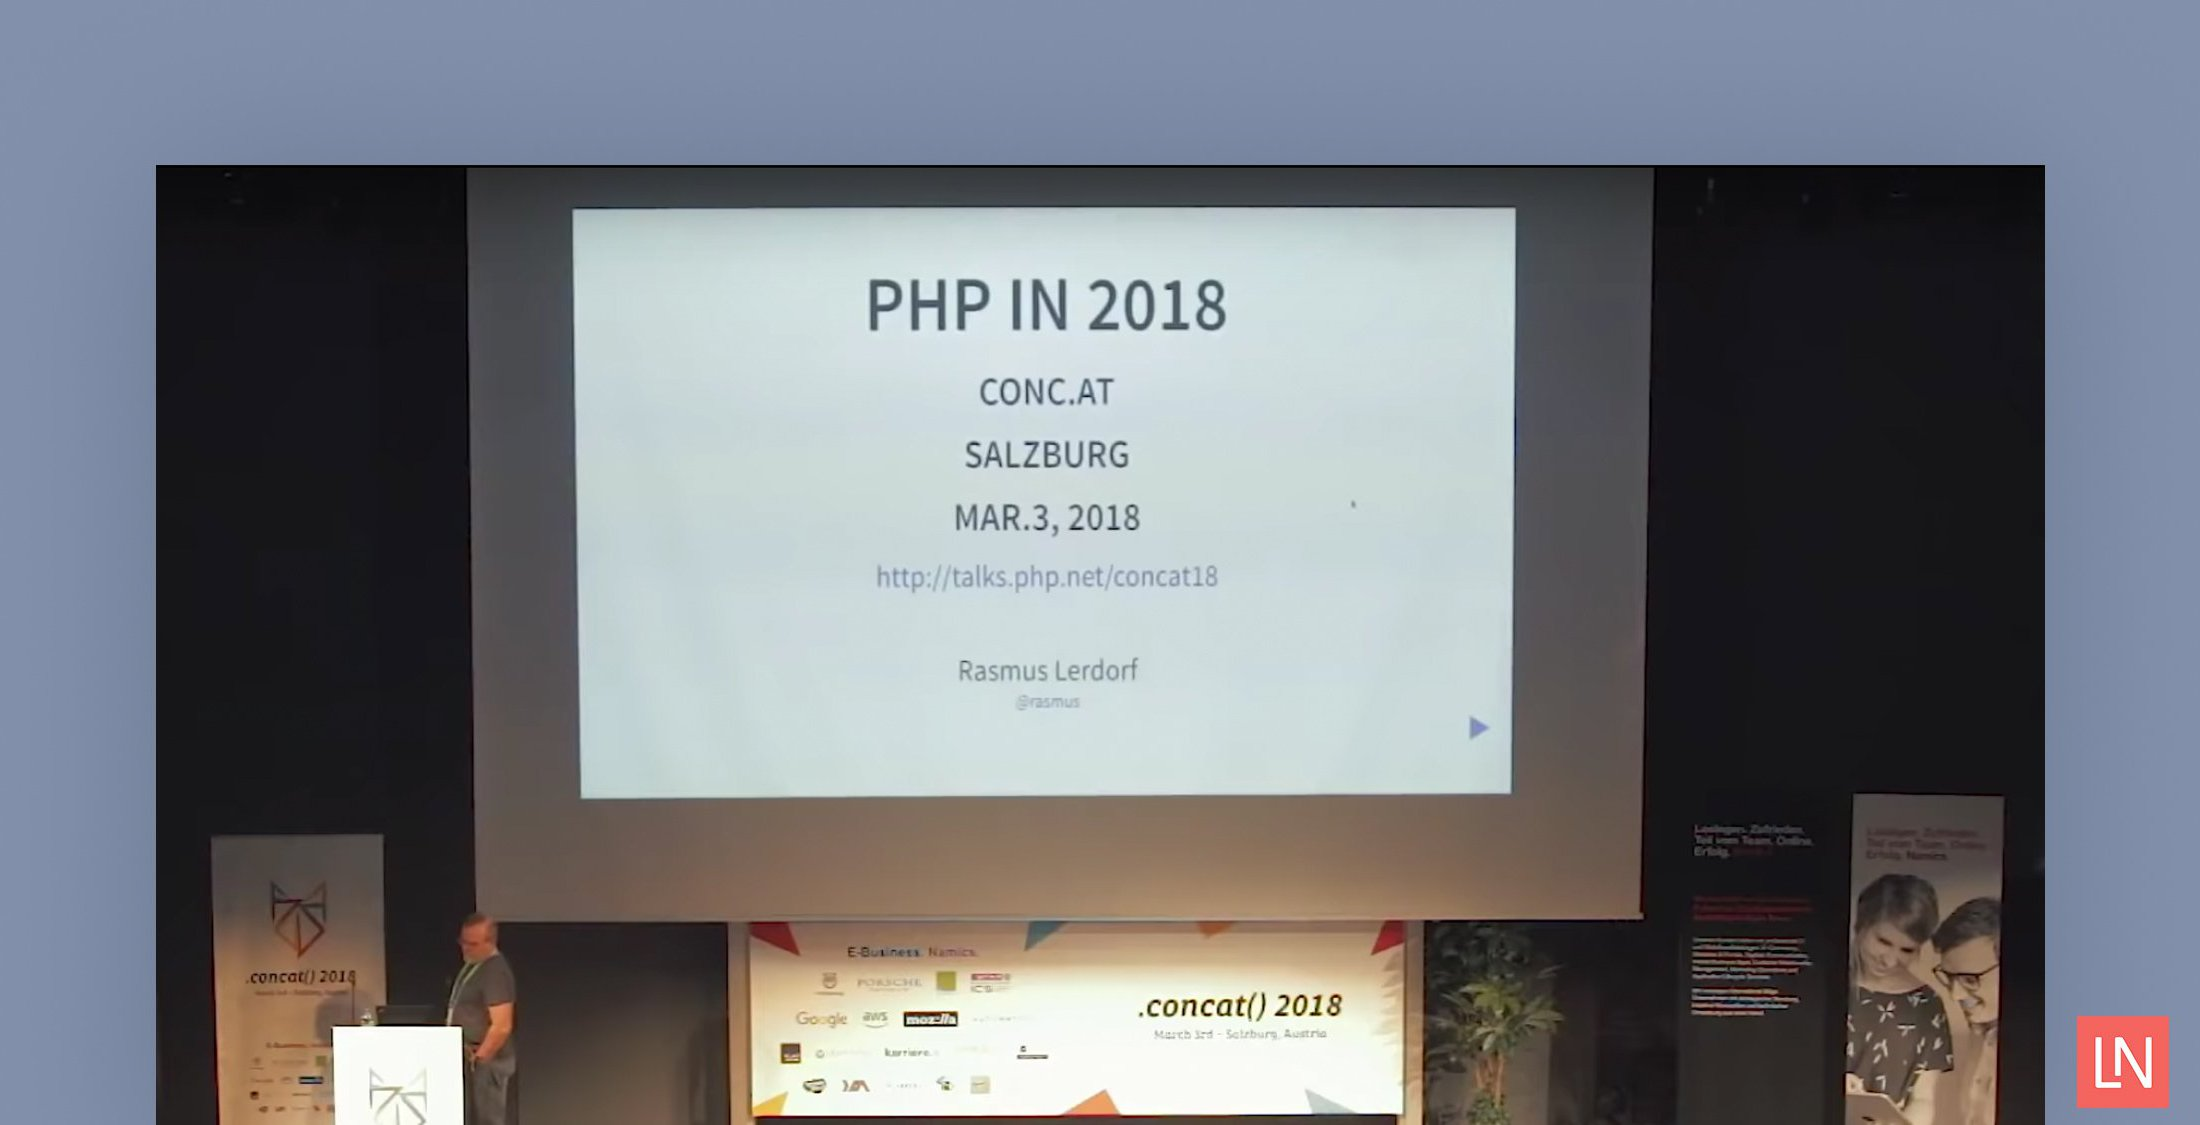 PHP in 2018 - A Talk by Rasmus Lerdorf, PHP founding developer